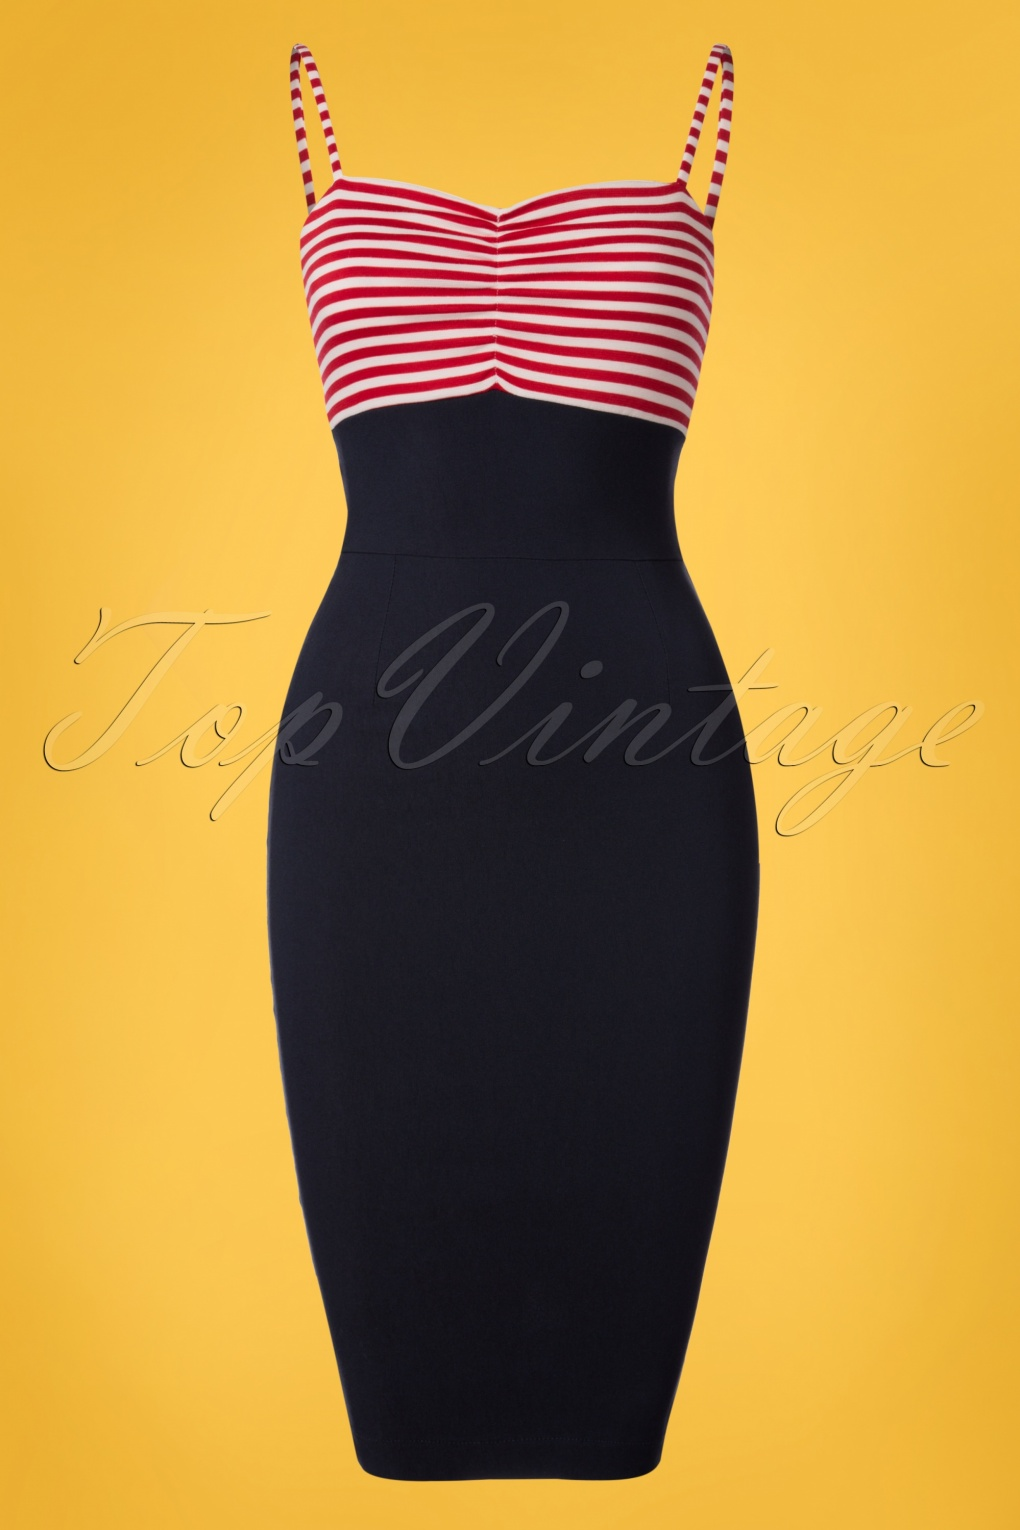 Sailor Dresses, Nautical Dress, Pin Up & WW2 Dresses 50s All Aboard Pencil Dress in Navy and Red £100.71 AT vintagedancer.com